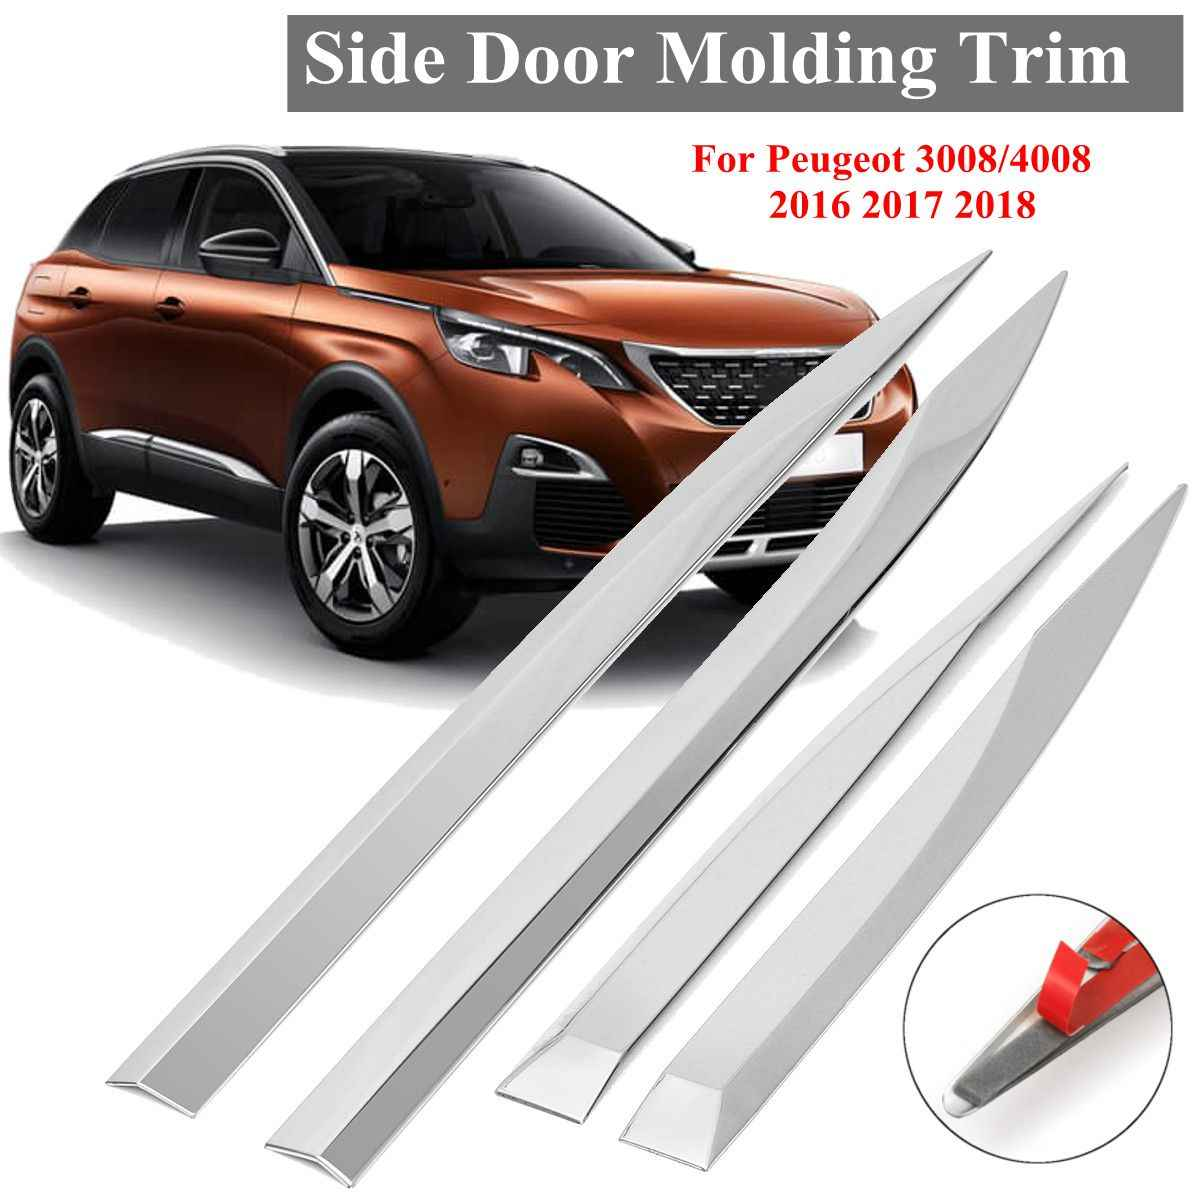 4X Auto Deur Body Chrome Side Molding Protector Trim Rvs Sticker Strips Voor Peugeot 3008 4008 2016 2017 2018